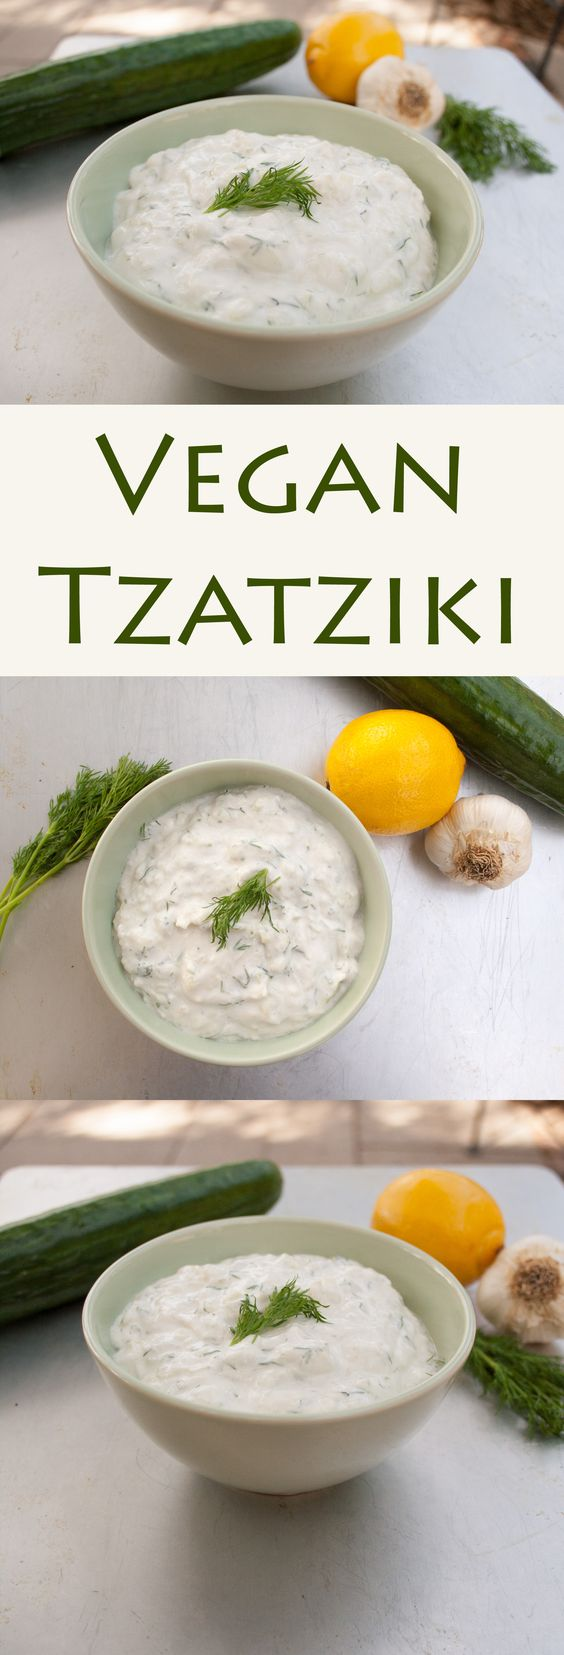 Vegan Tzatziki - This Greek sauce can be used as a dip or condiment. It pairs nicely with falafel or vegan gyros.